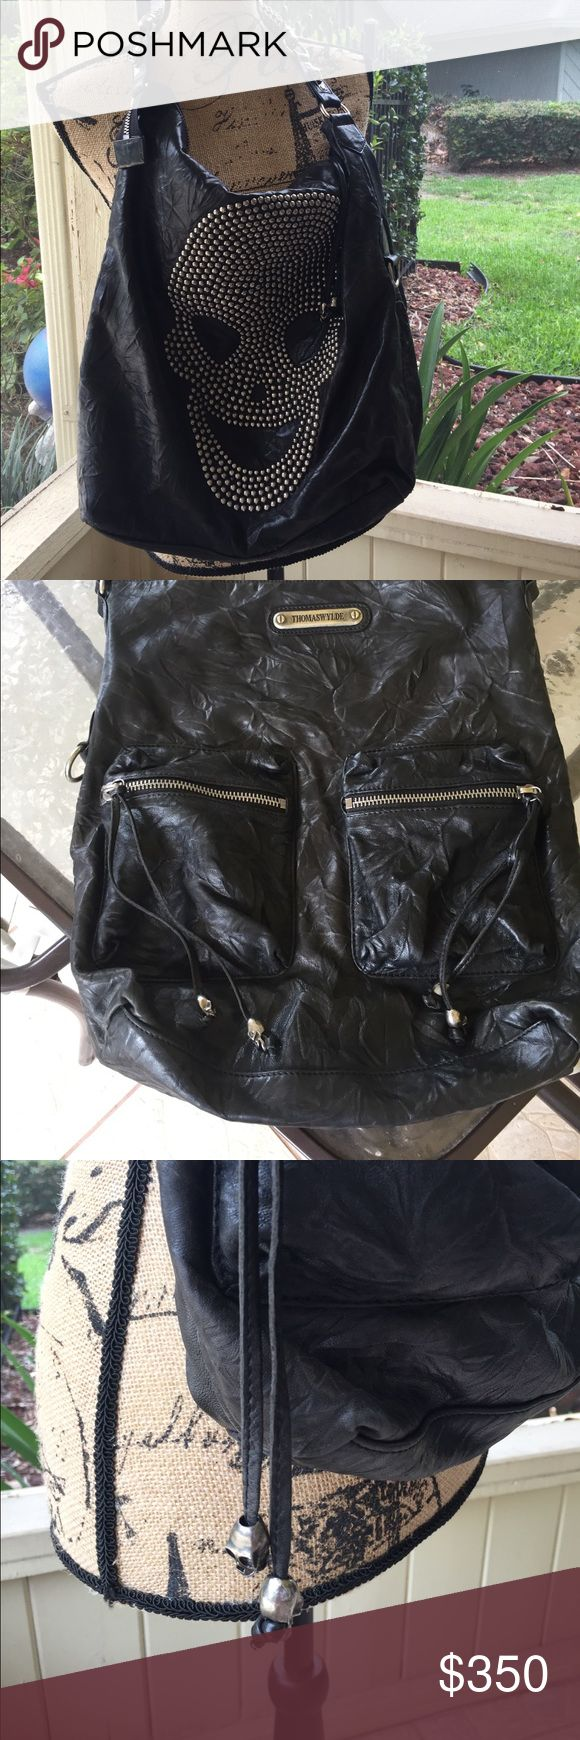 """Thomas Wylde skull  purse Purchased from a posh sista...took on one trip...for the amount of """"stuff"""" I had in bag it was uncomfortable on my shoulder Bags"""